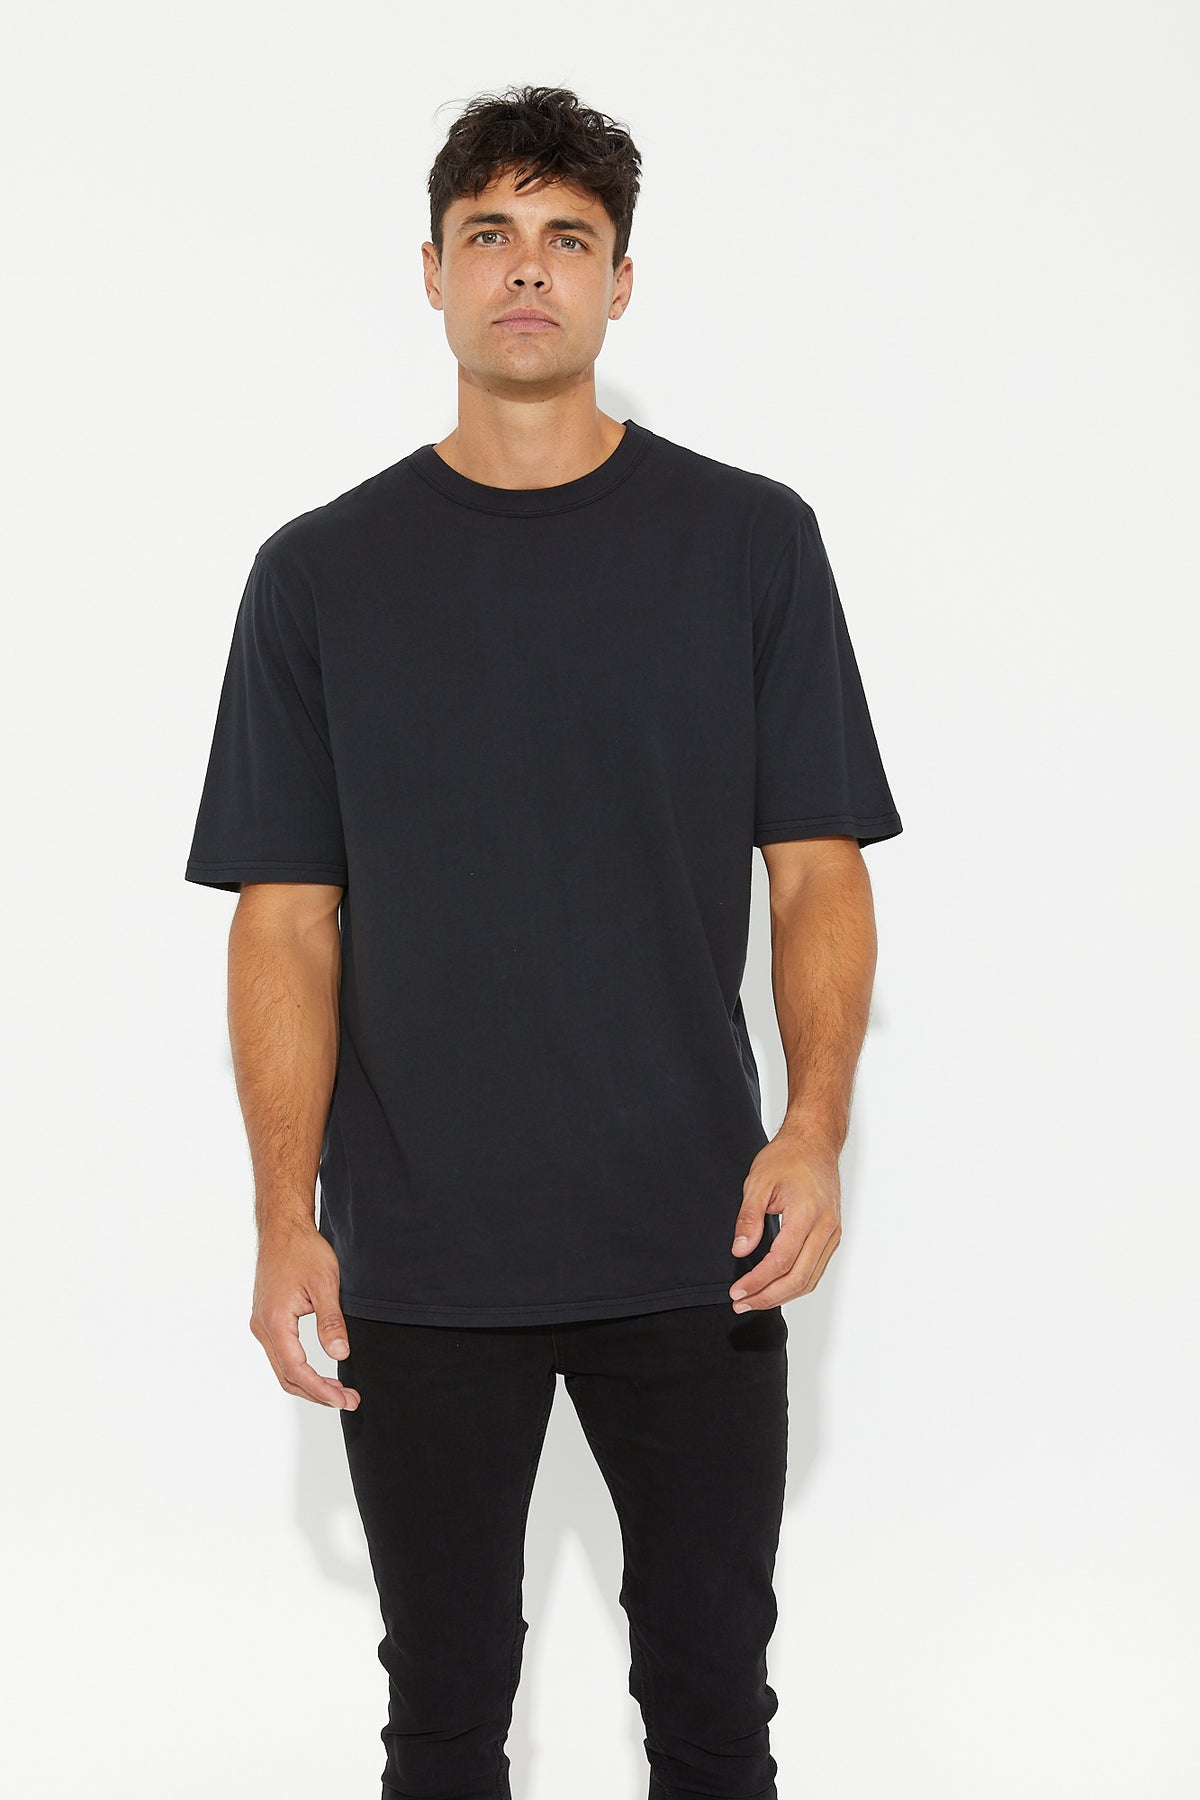 Johnson Neck Bind Crew Black